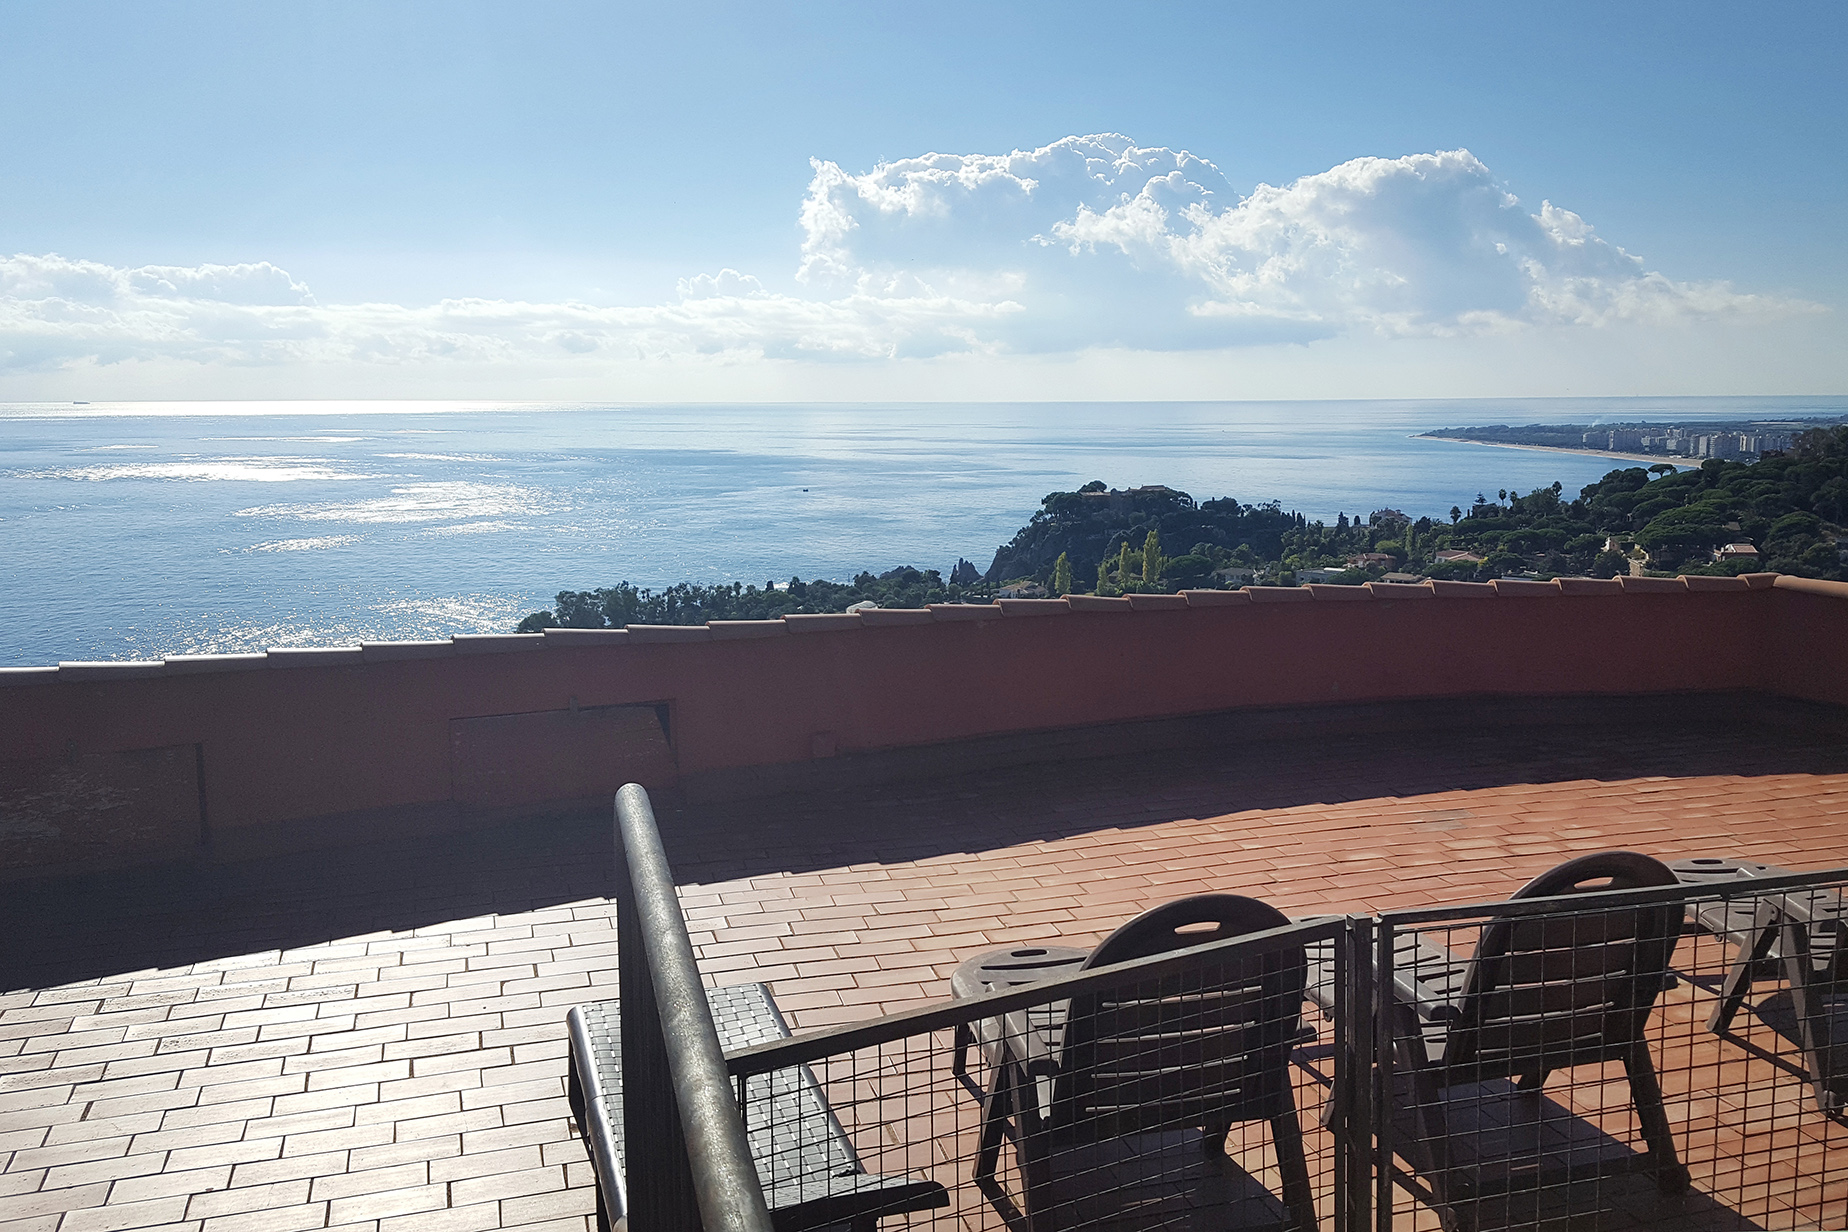 Single Family Home for Sale at Villa with extraordinary sea views in exclusive location Other Spain, Other Areas In Spain, 17300 Spain